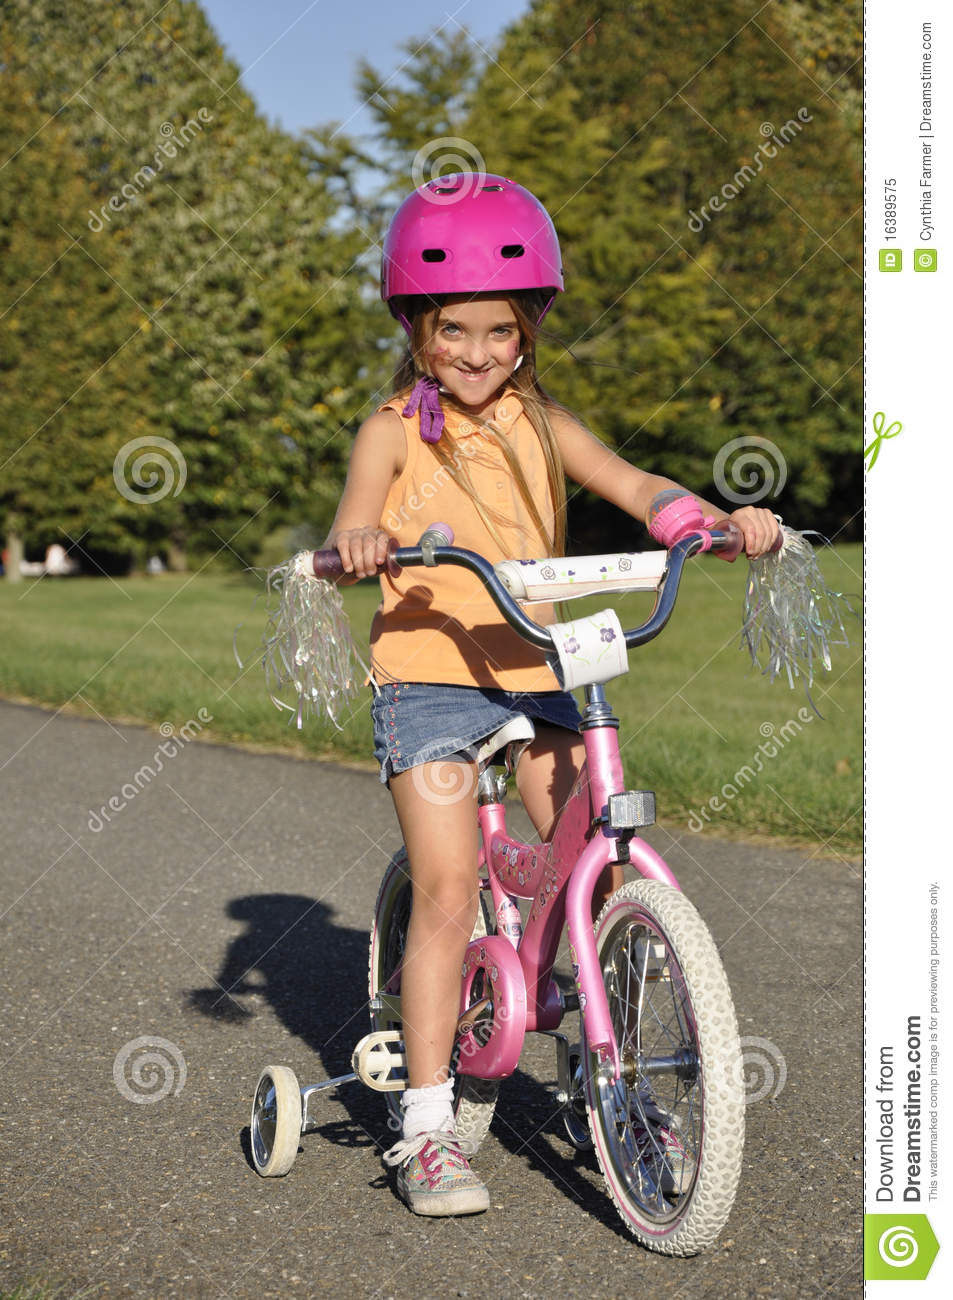 Bikes With Training Wheels For Girls Small girl on a bike with